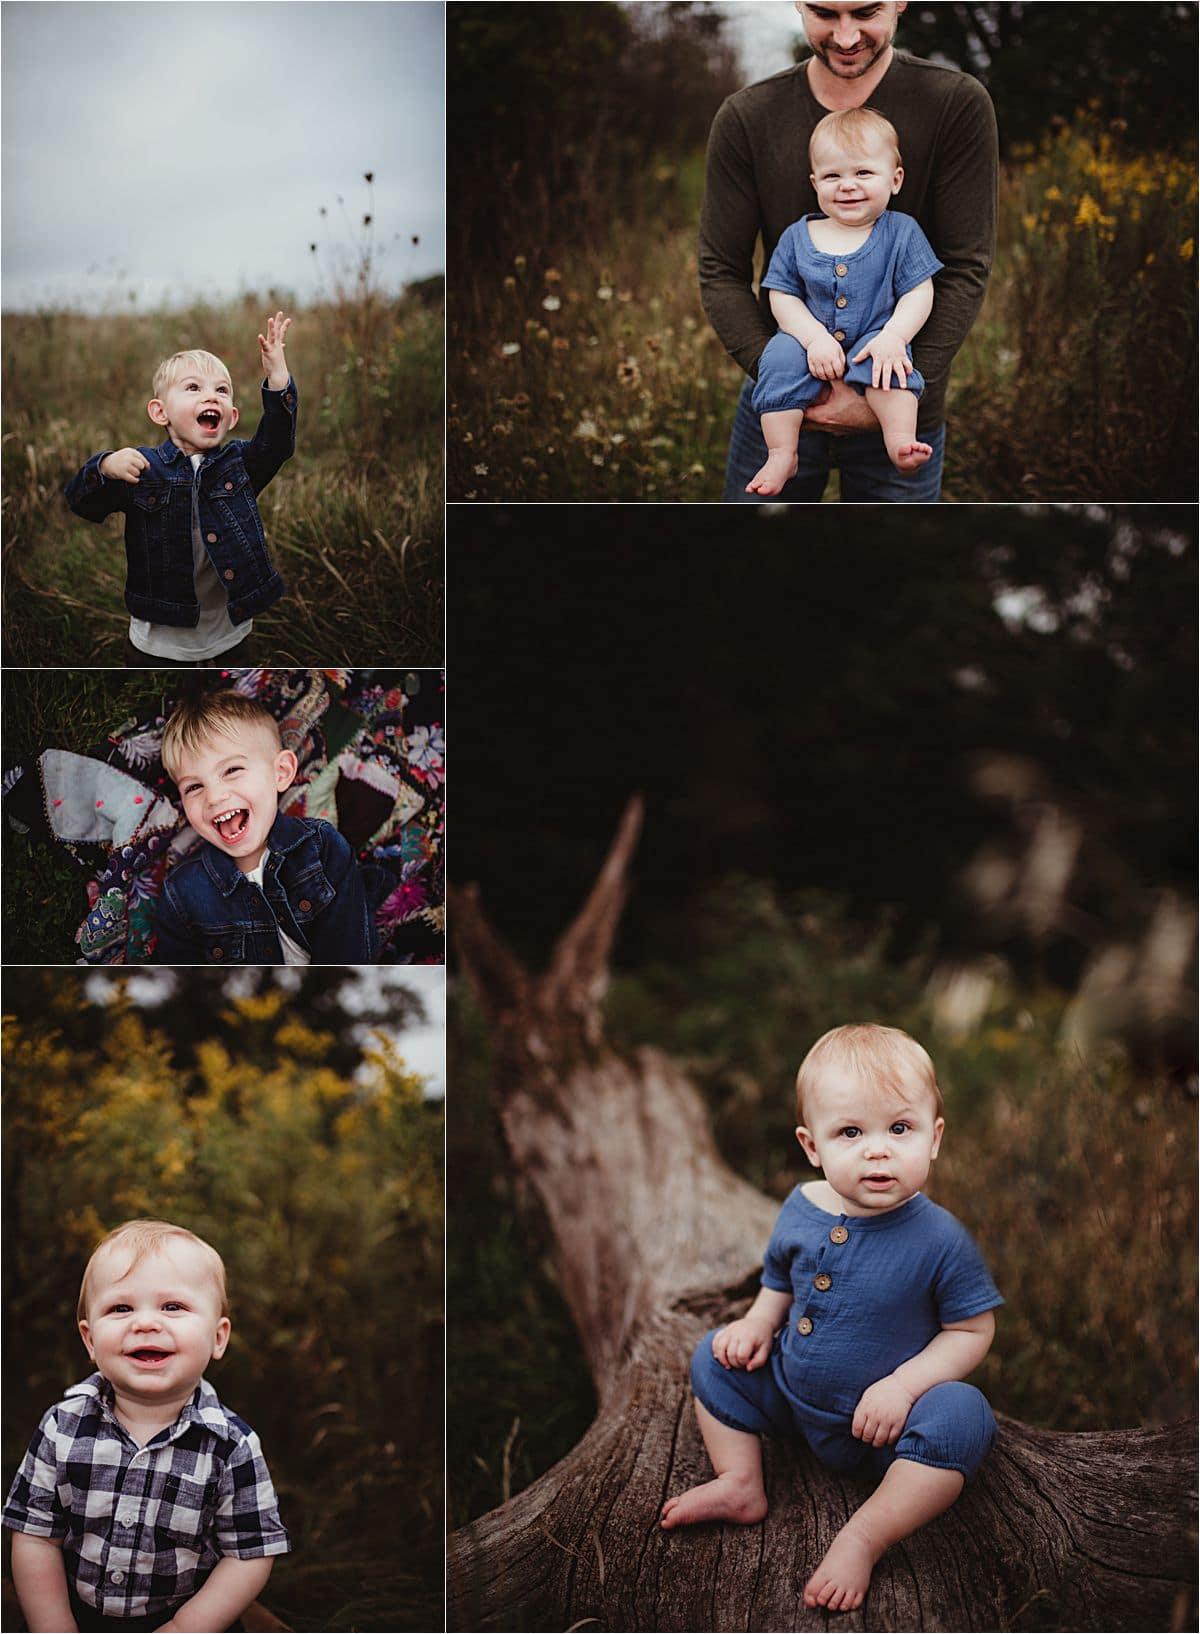 Outdoor Milestone Session Collage of Kids Portraits